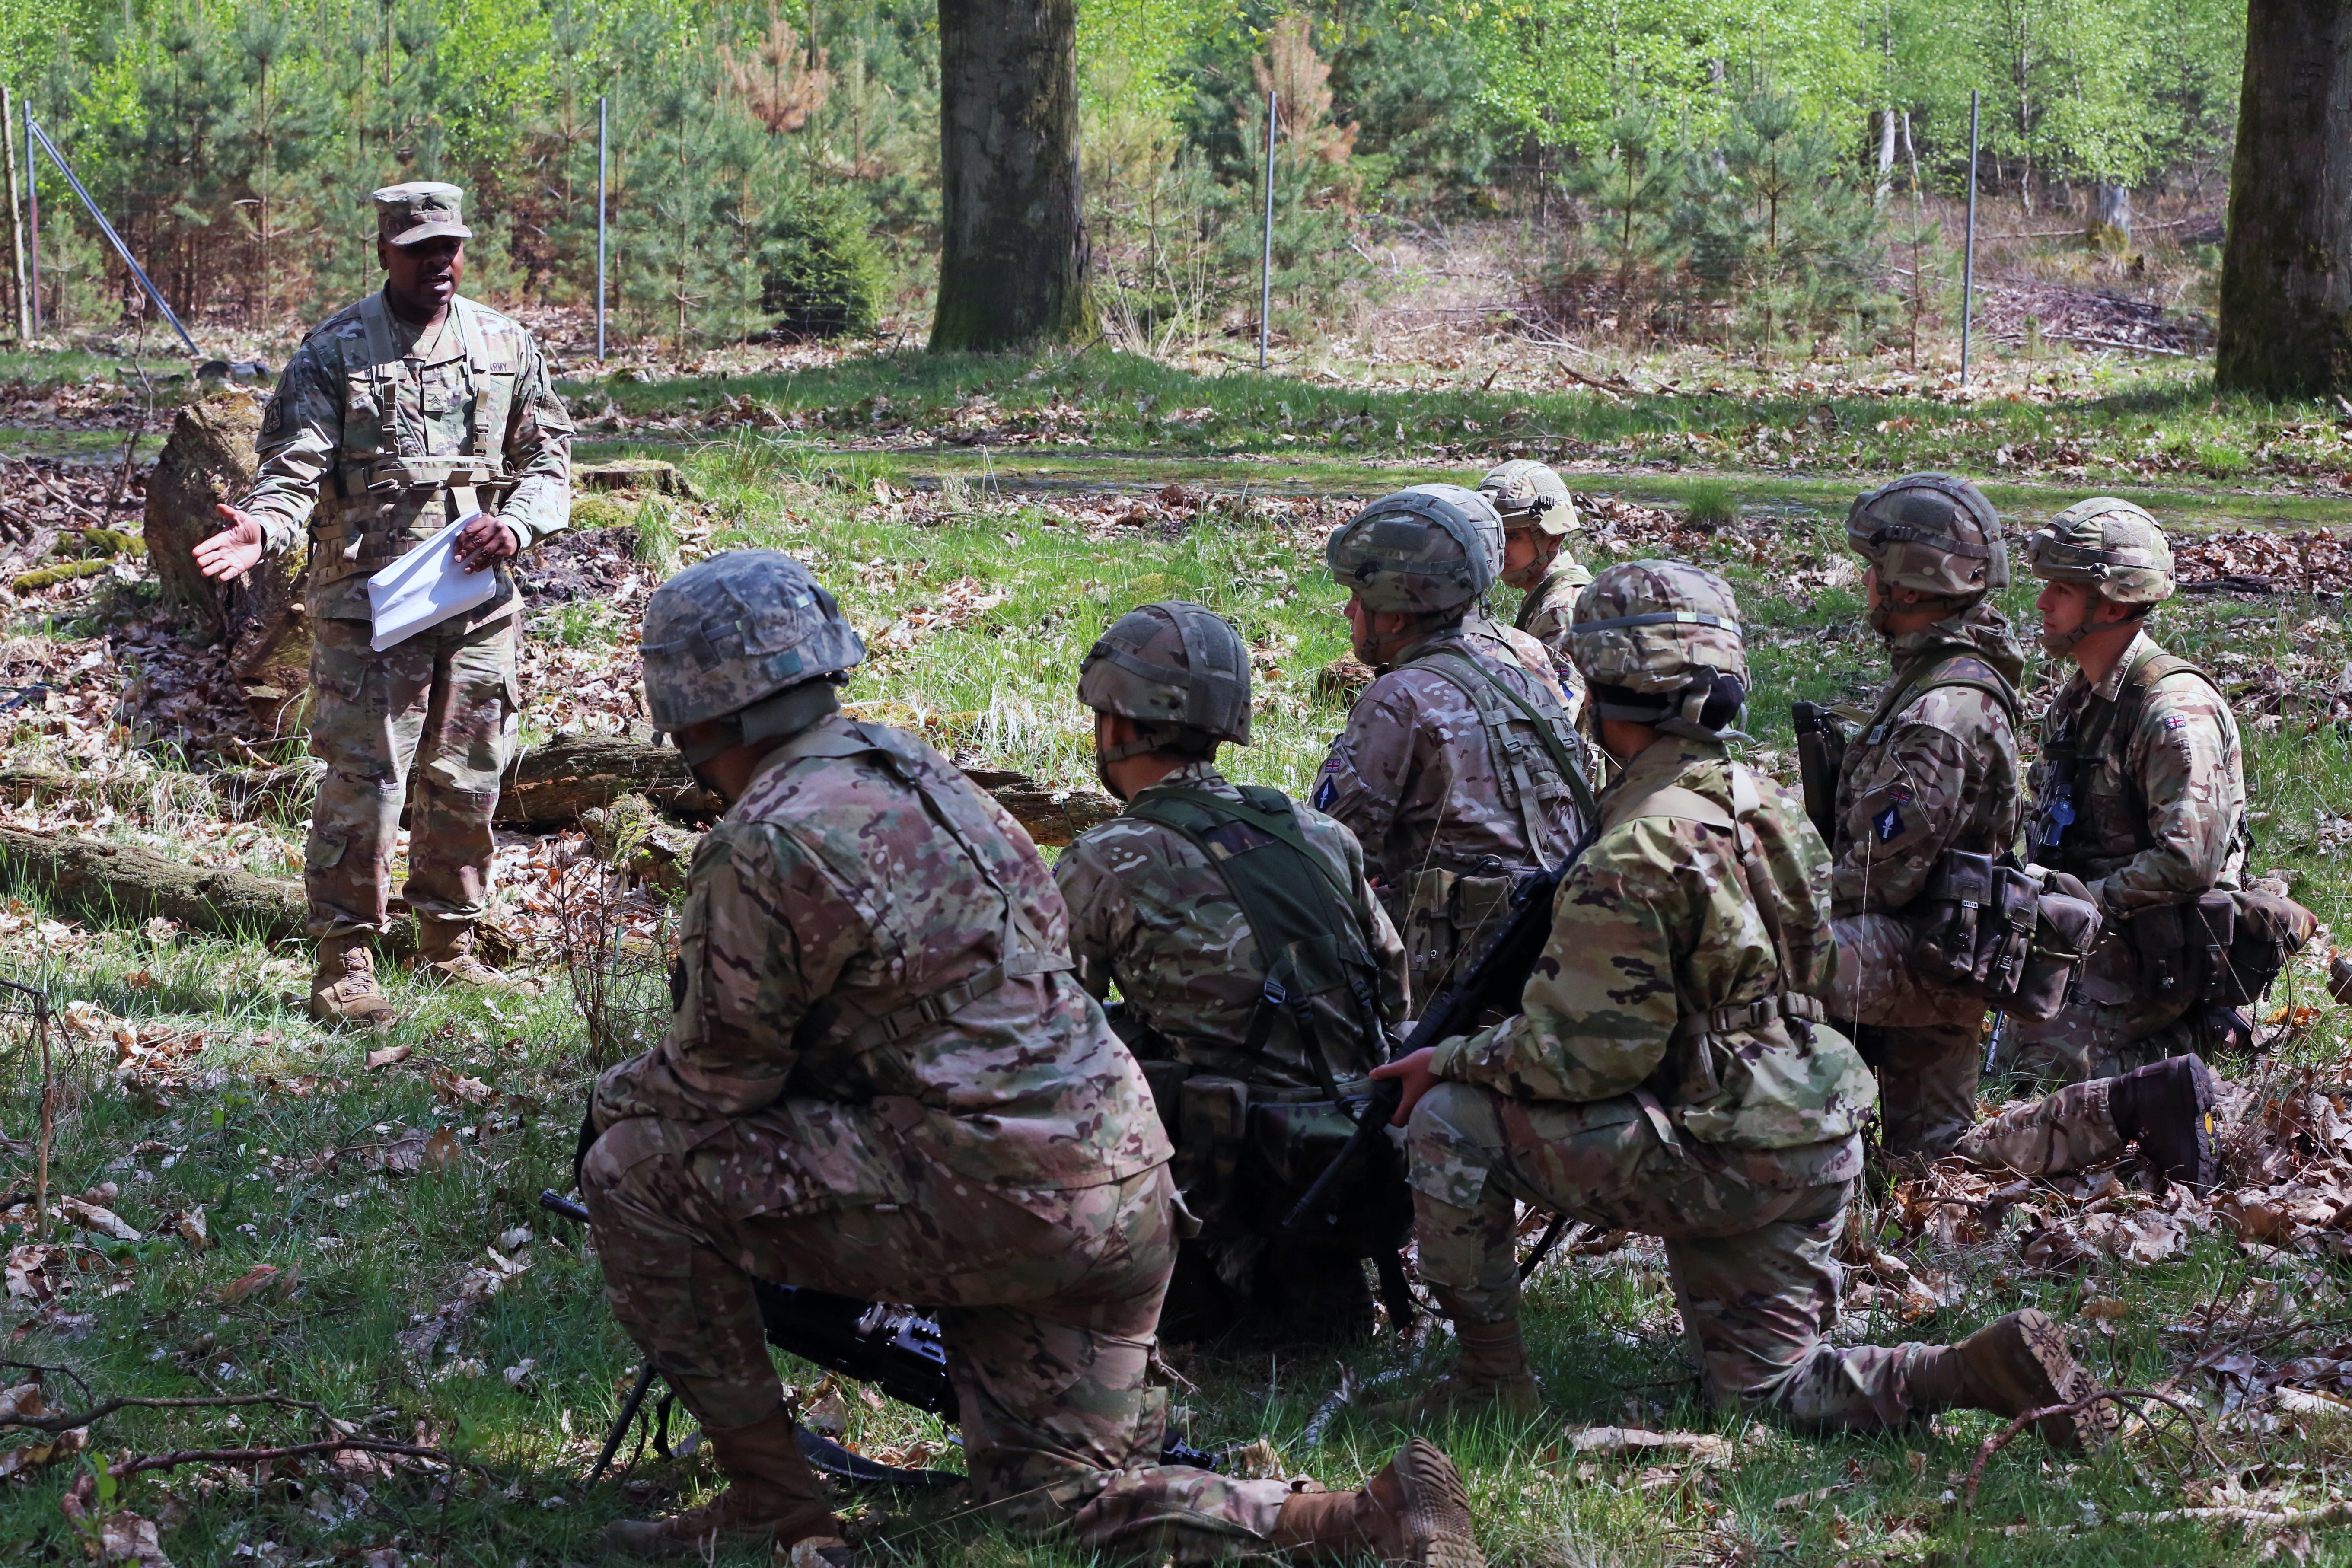 U.S. Army Sgt. Aaron Ward, assigned to Bravo Company, 44th Expeditionary Signal Battalion, 2nd Theater Signal Brigade, instructs U.S. and British Army Soldiers assigned to the 250th Signal Squadron, Queen's Gurkha Signals, on react to contact battle drill during exercise Stoney Run, April 23, 2018 in the Sennelager Training Area, Germany. Stoney Run is an annual U.S.-U.K. signal exercise designed to test and validate communications and network capabilities, and enhance interoperability and partner capacity between the two NATO allies. (U.S. Army photo by William B. King)